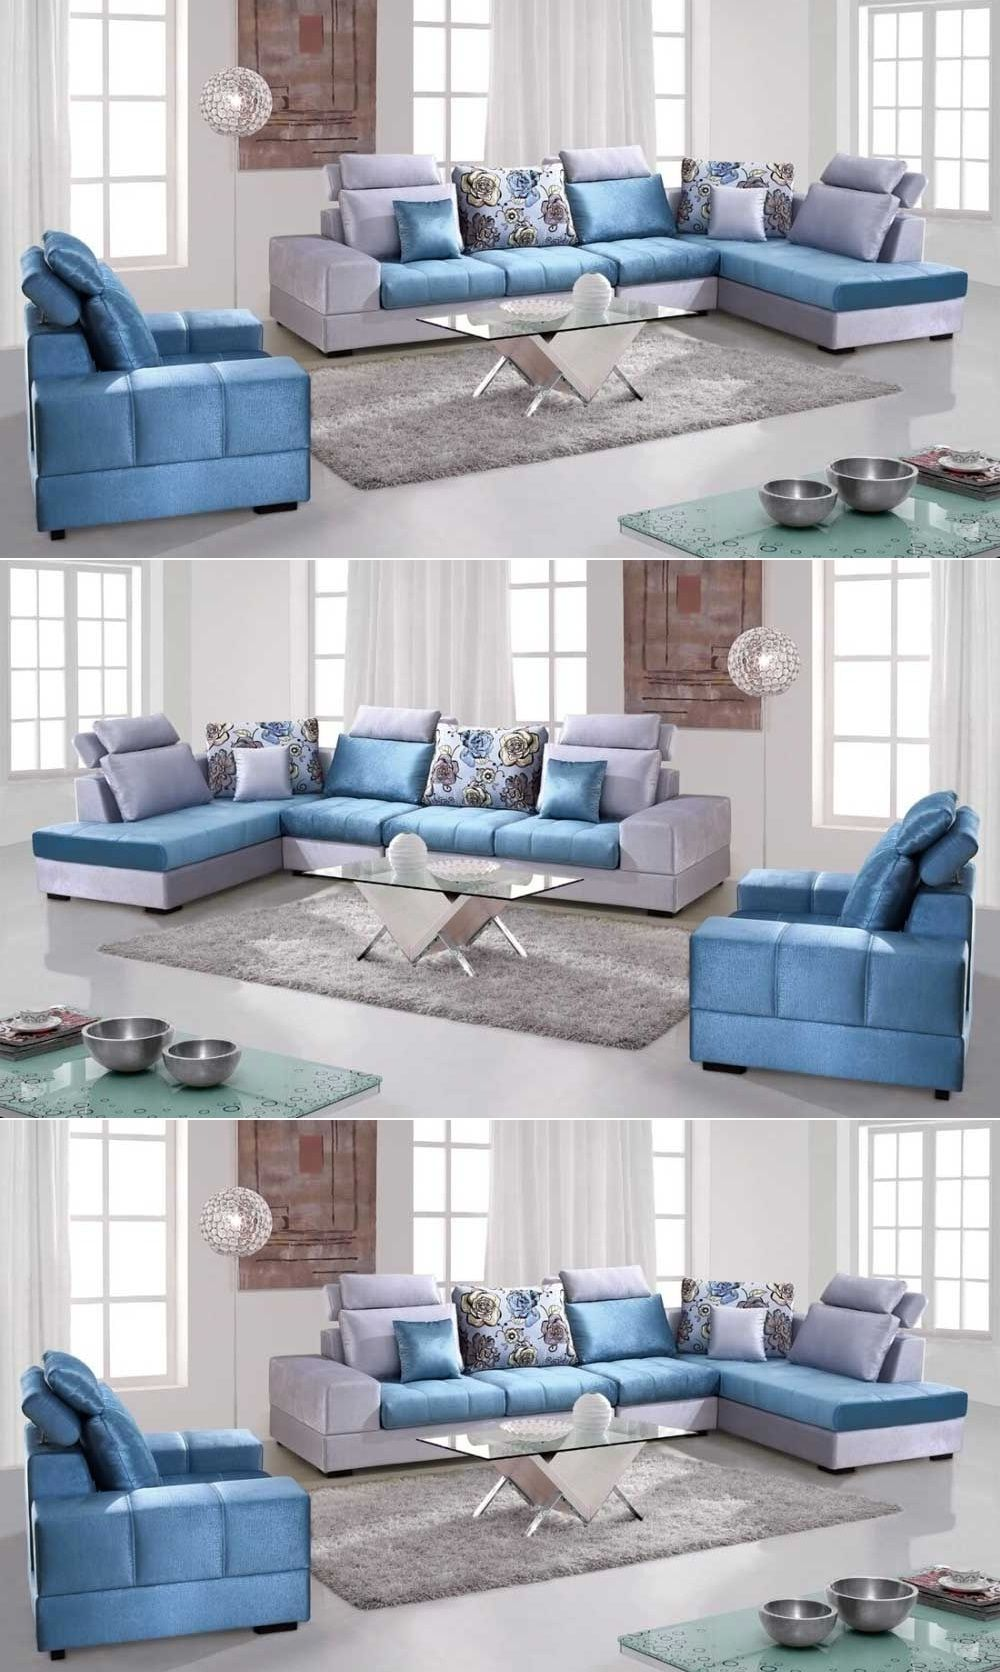 L Shaped Sofa Design Most Popular 2019 Latest Sofa Designs L